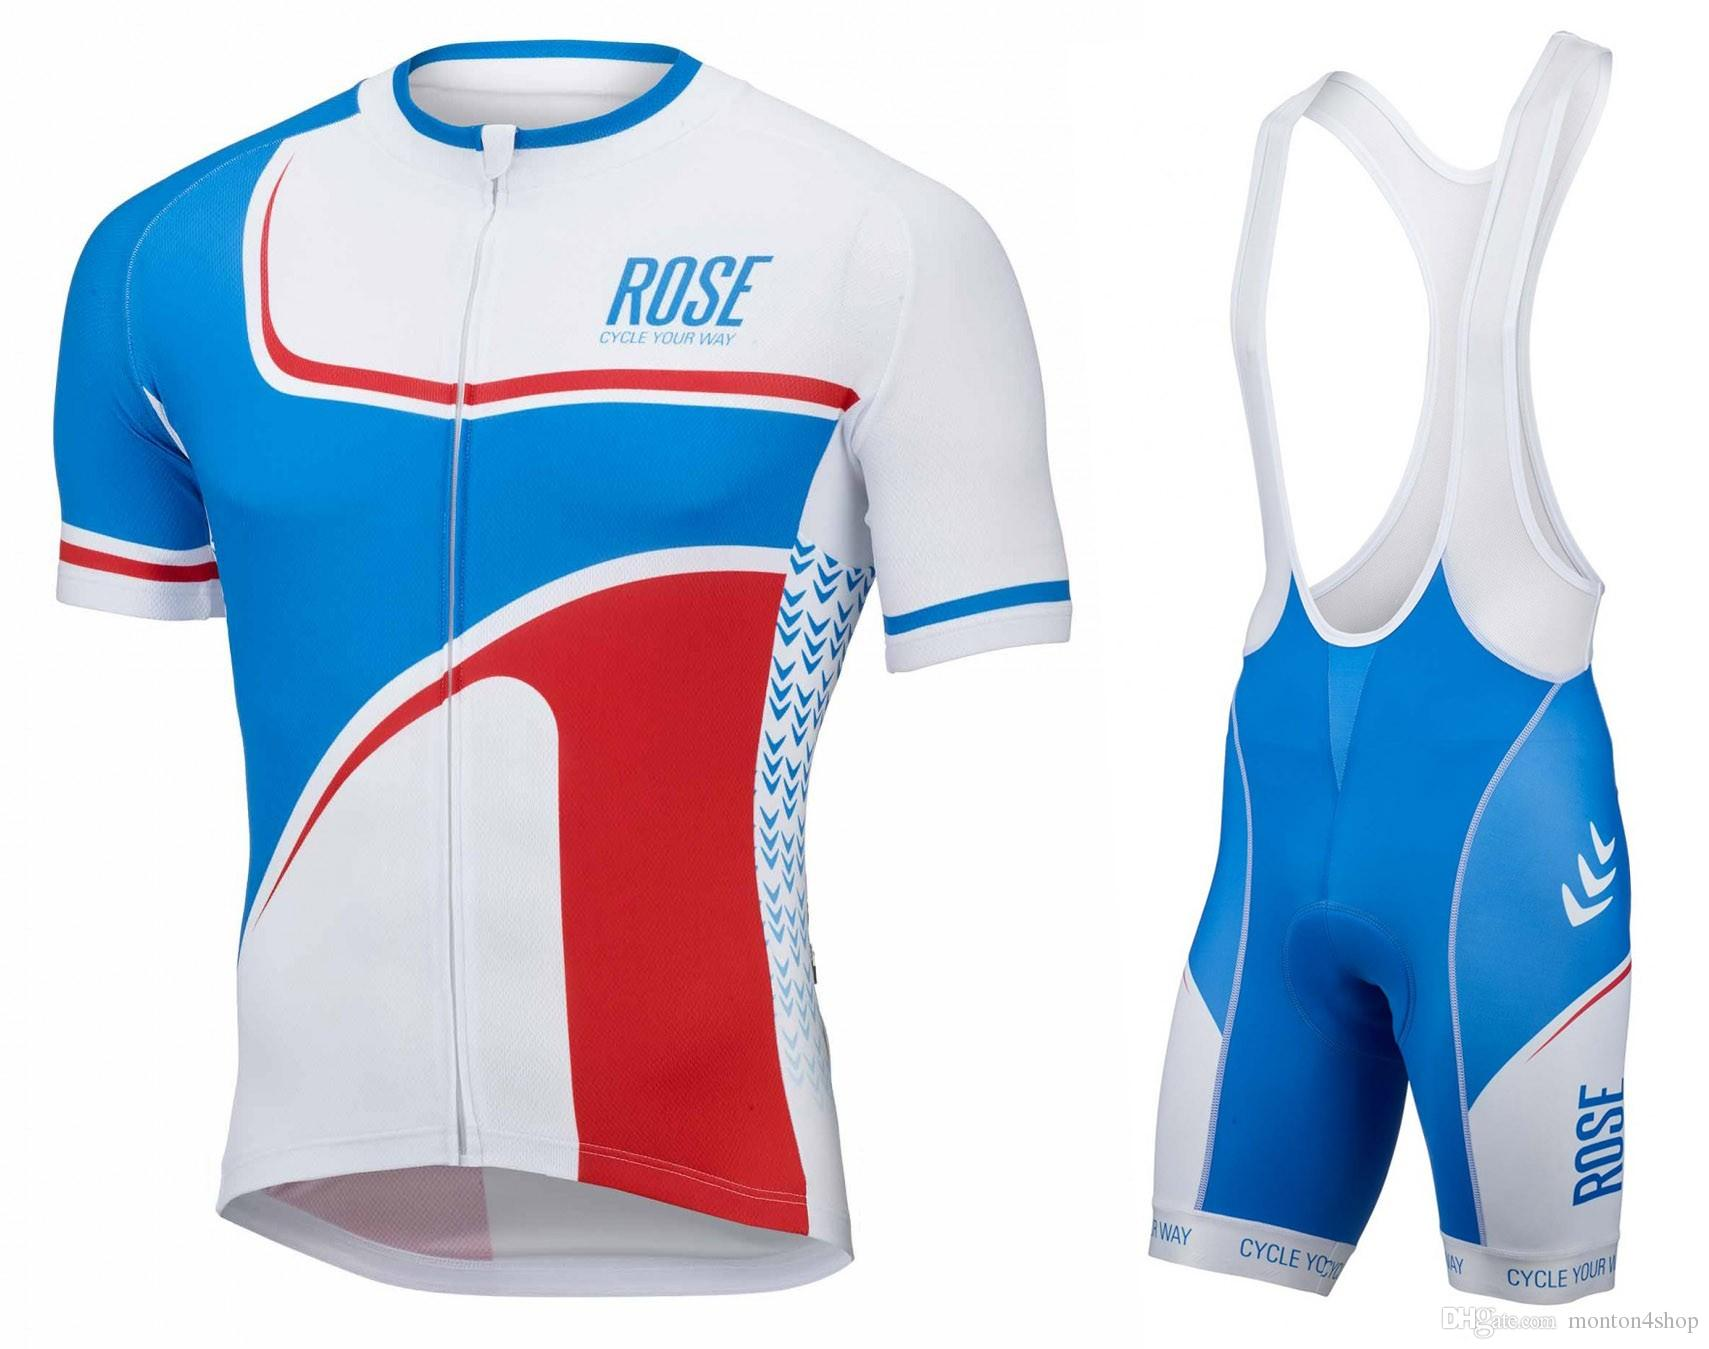 44a6ece19 Mens Rose Retro Blue White Cycling Jersey 2018 Maillot Ciclismo ...